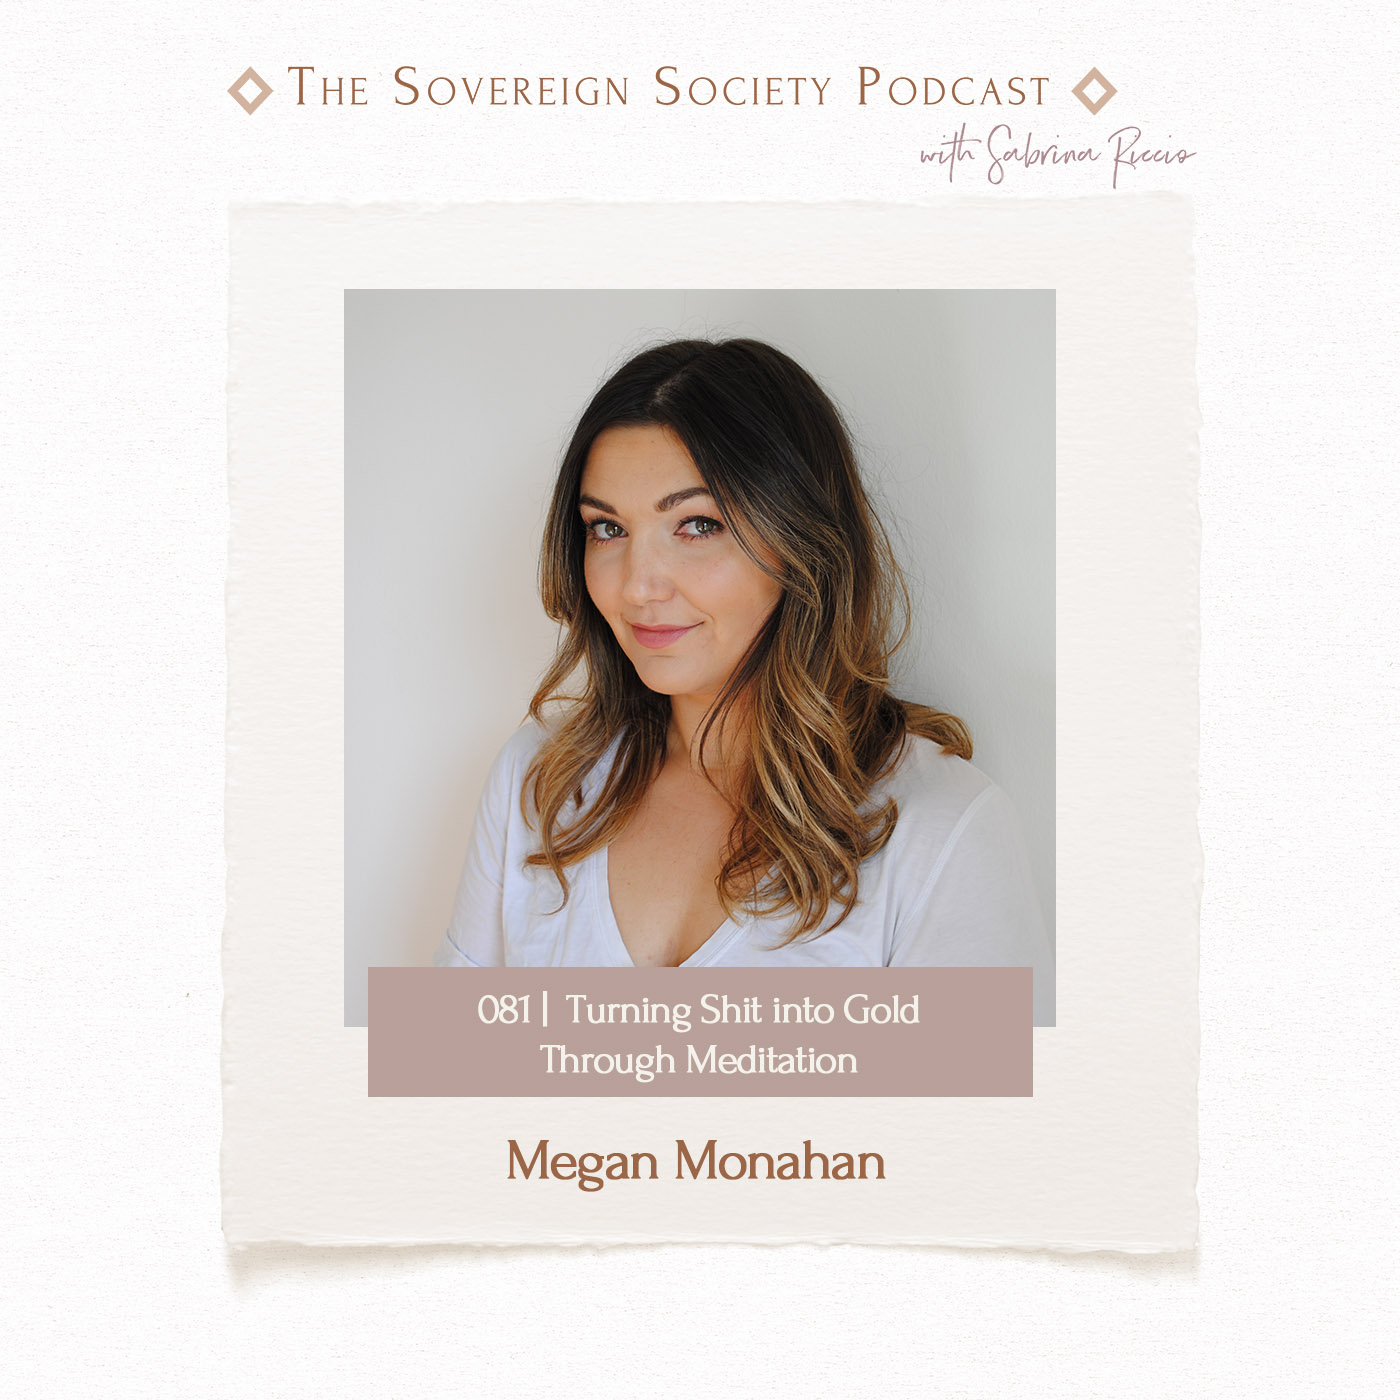 081 | Turning Shit into Gold through Meditation | Megan Monahan